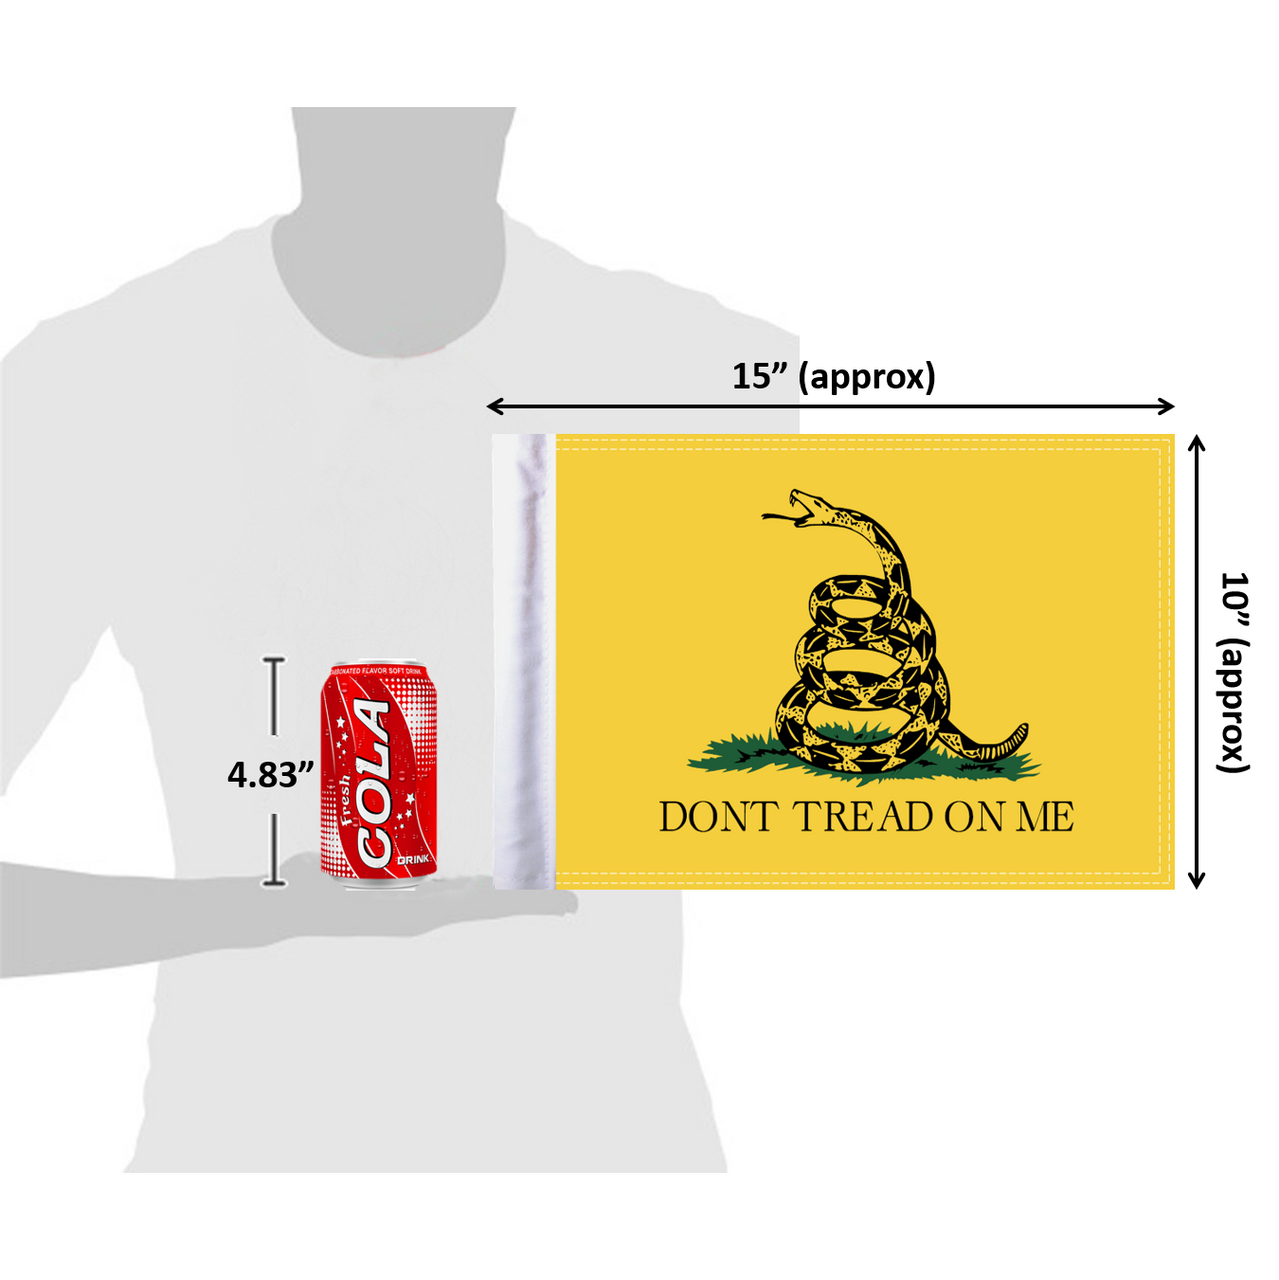 10x15 Gadsden Don't Tread on Me flag (size comparison view)